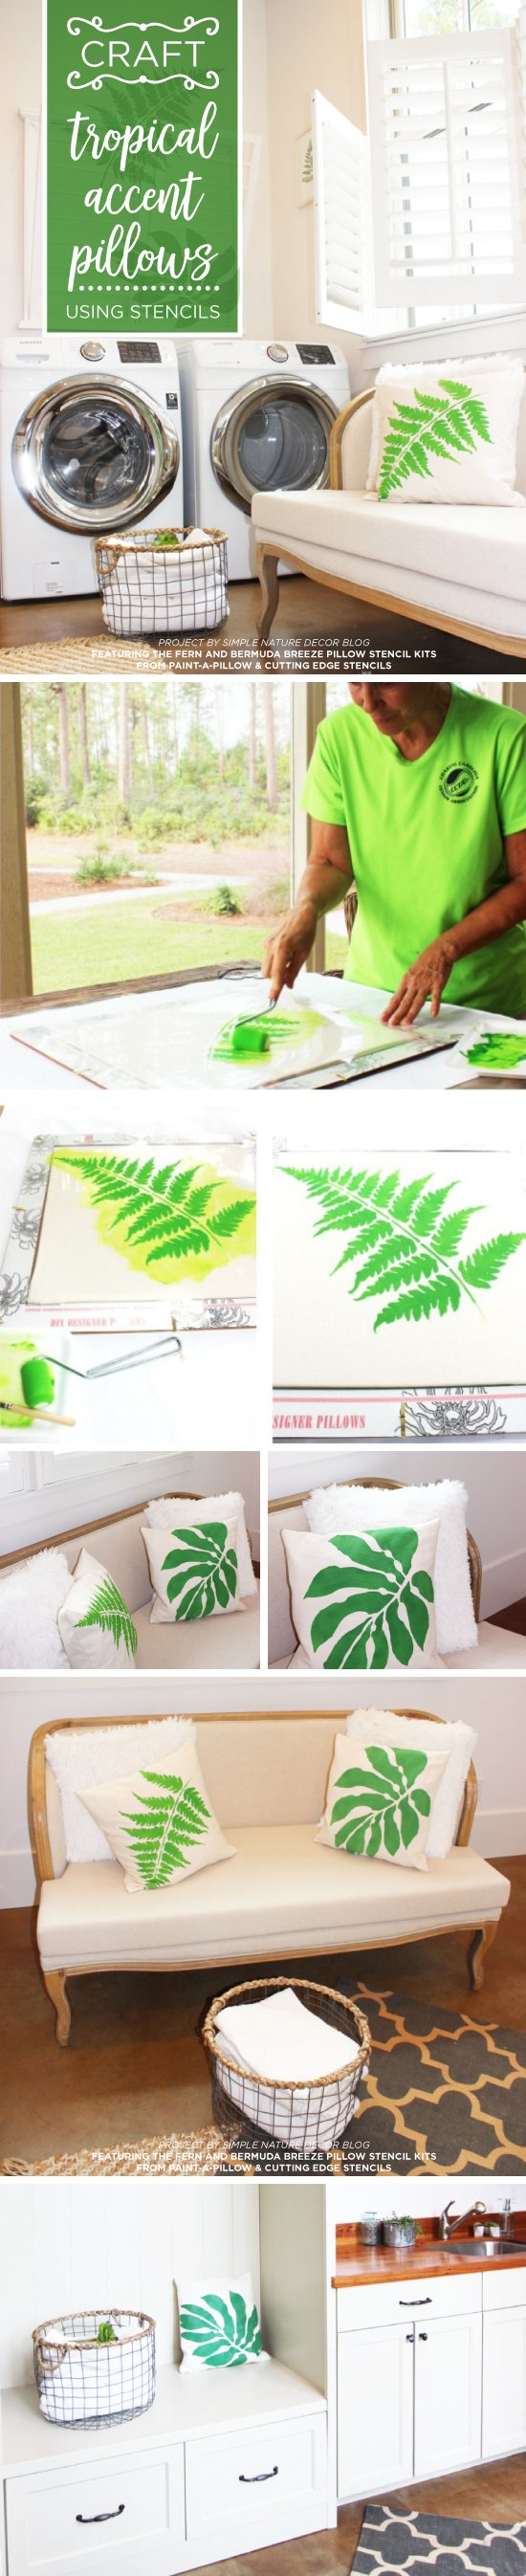 Cutting Edge Stencils shares DIY botanical stenciled accent pillows painted using the Accent Pillow Stencil Kits.  http://www.cuttingedgestencils.com/accent-pillow-stencil-kits.html